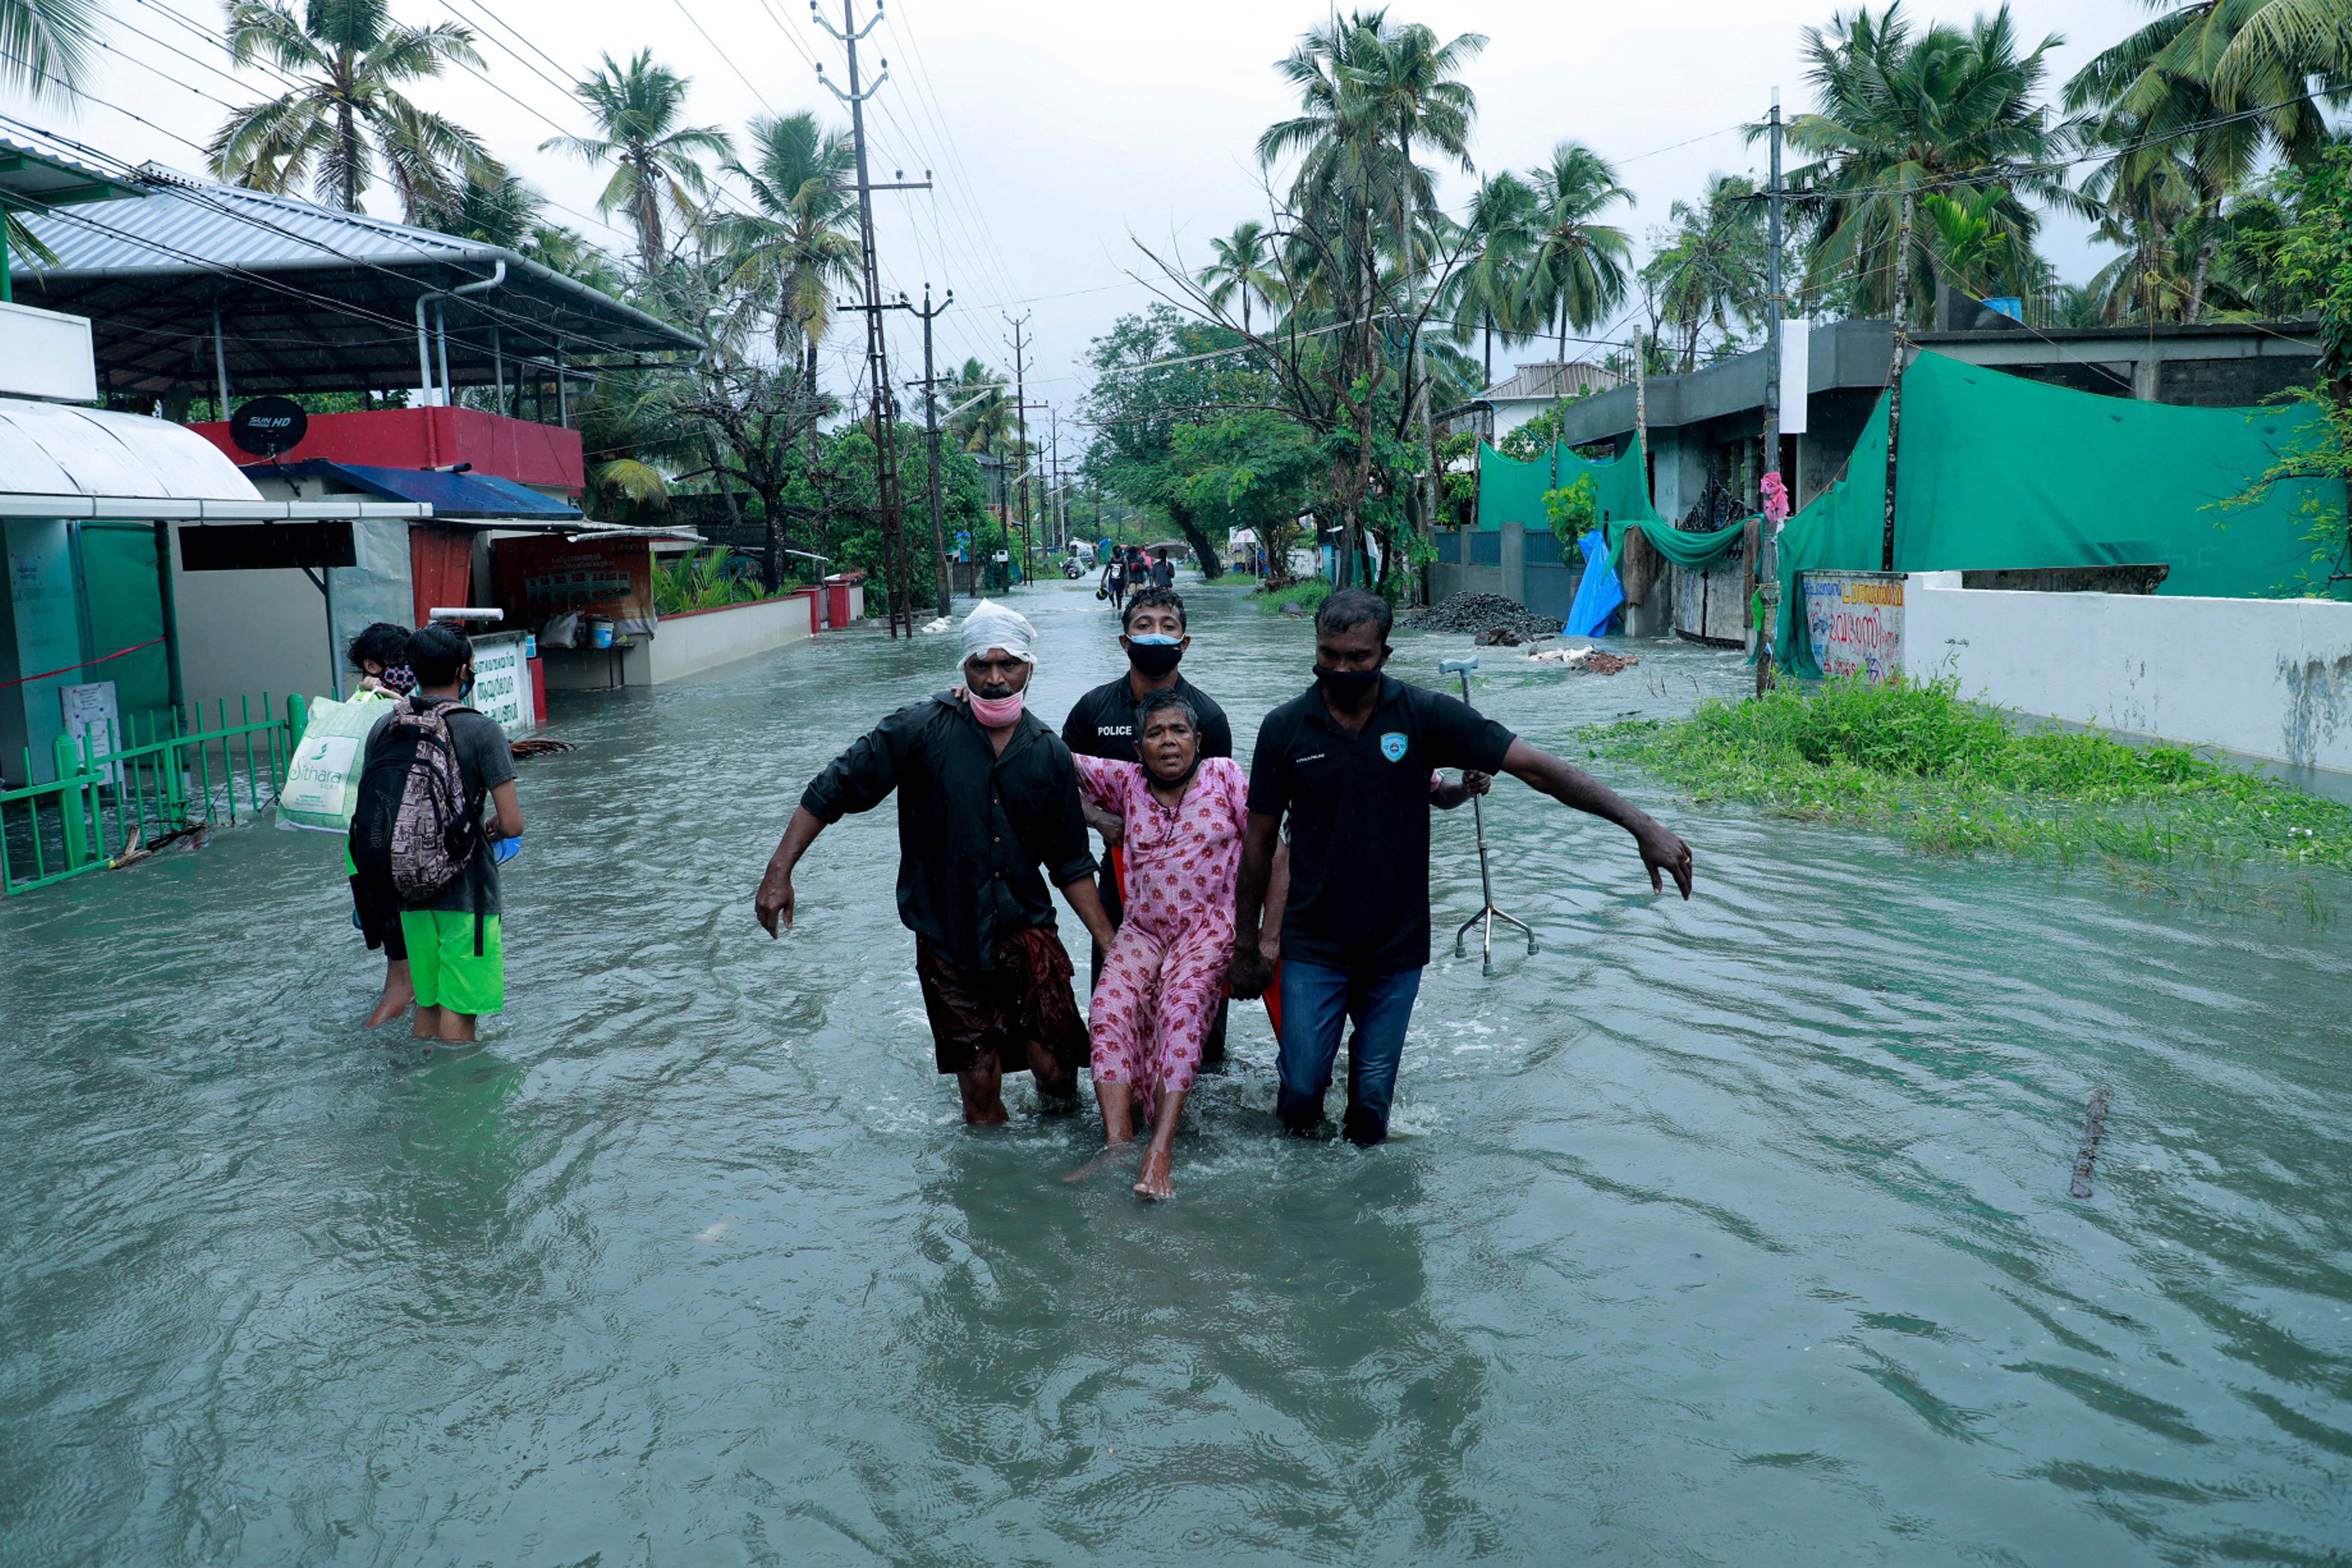 Police and rescue personnel evacuate a local resident through a flooded street in a coastal area after heavy rains under the influence of cyclone 'Tauktae' in Kochi on May 14